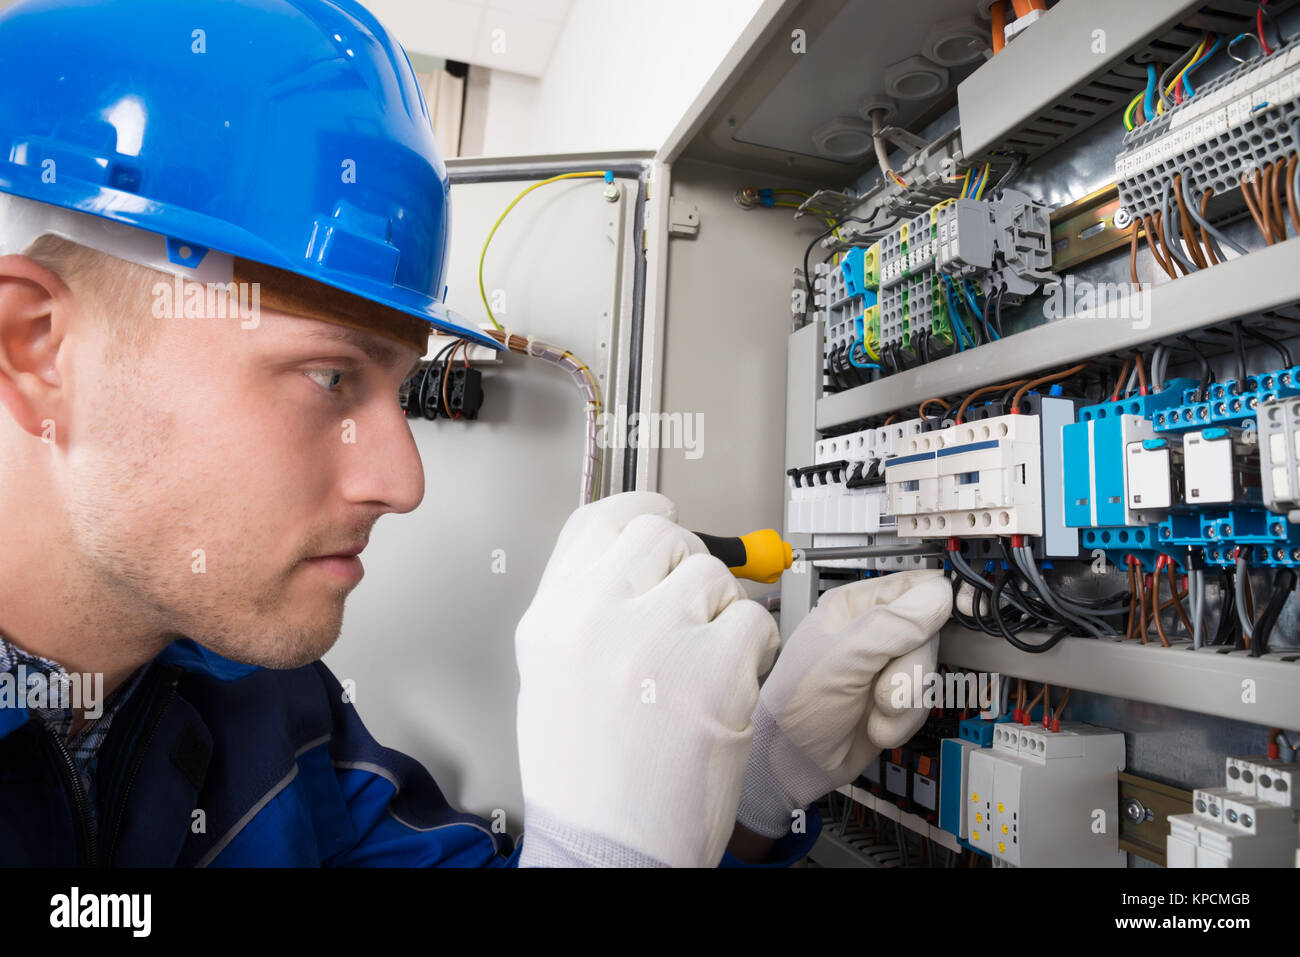 Electrical Tester Stock Photos Images Alamy Mgb Fuse Box Male Electrician Examining Fusebox Image